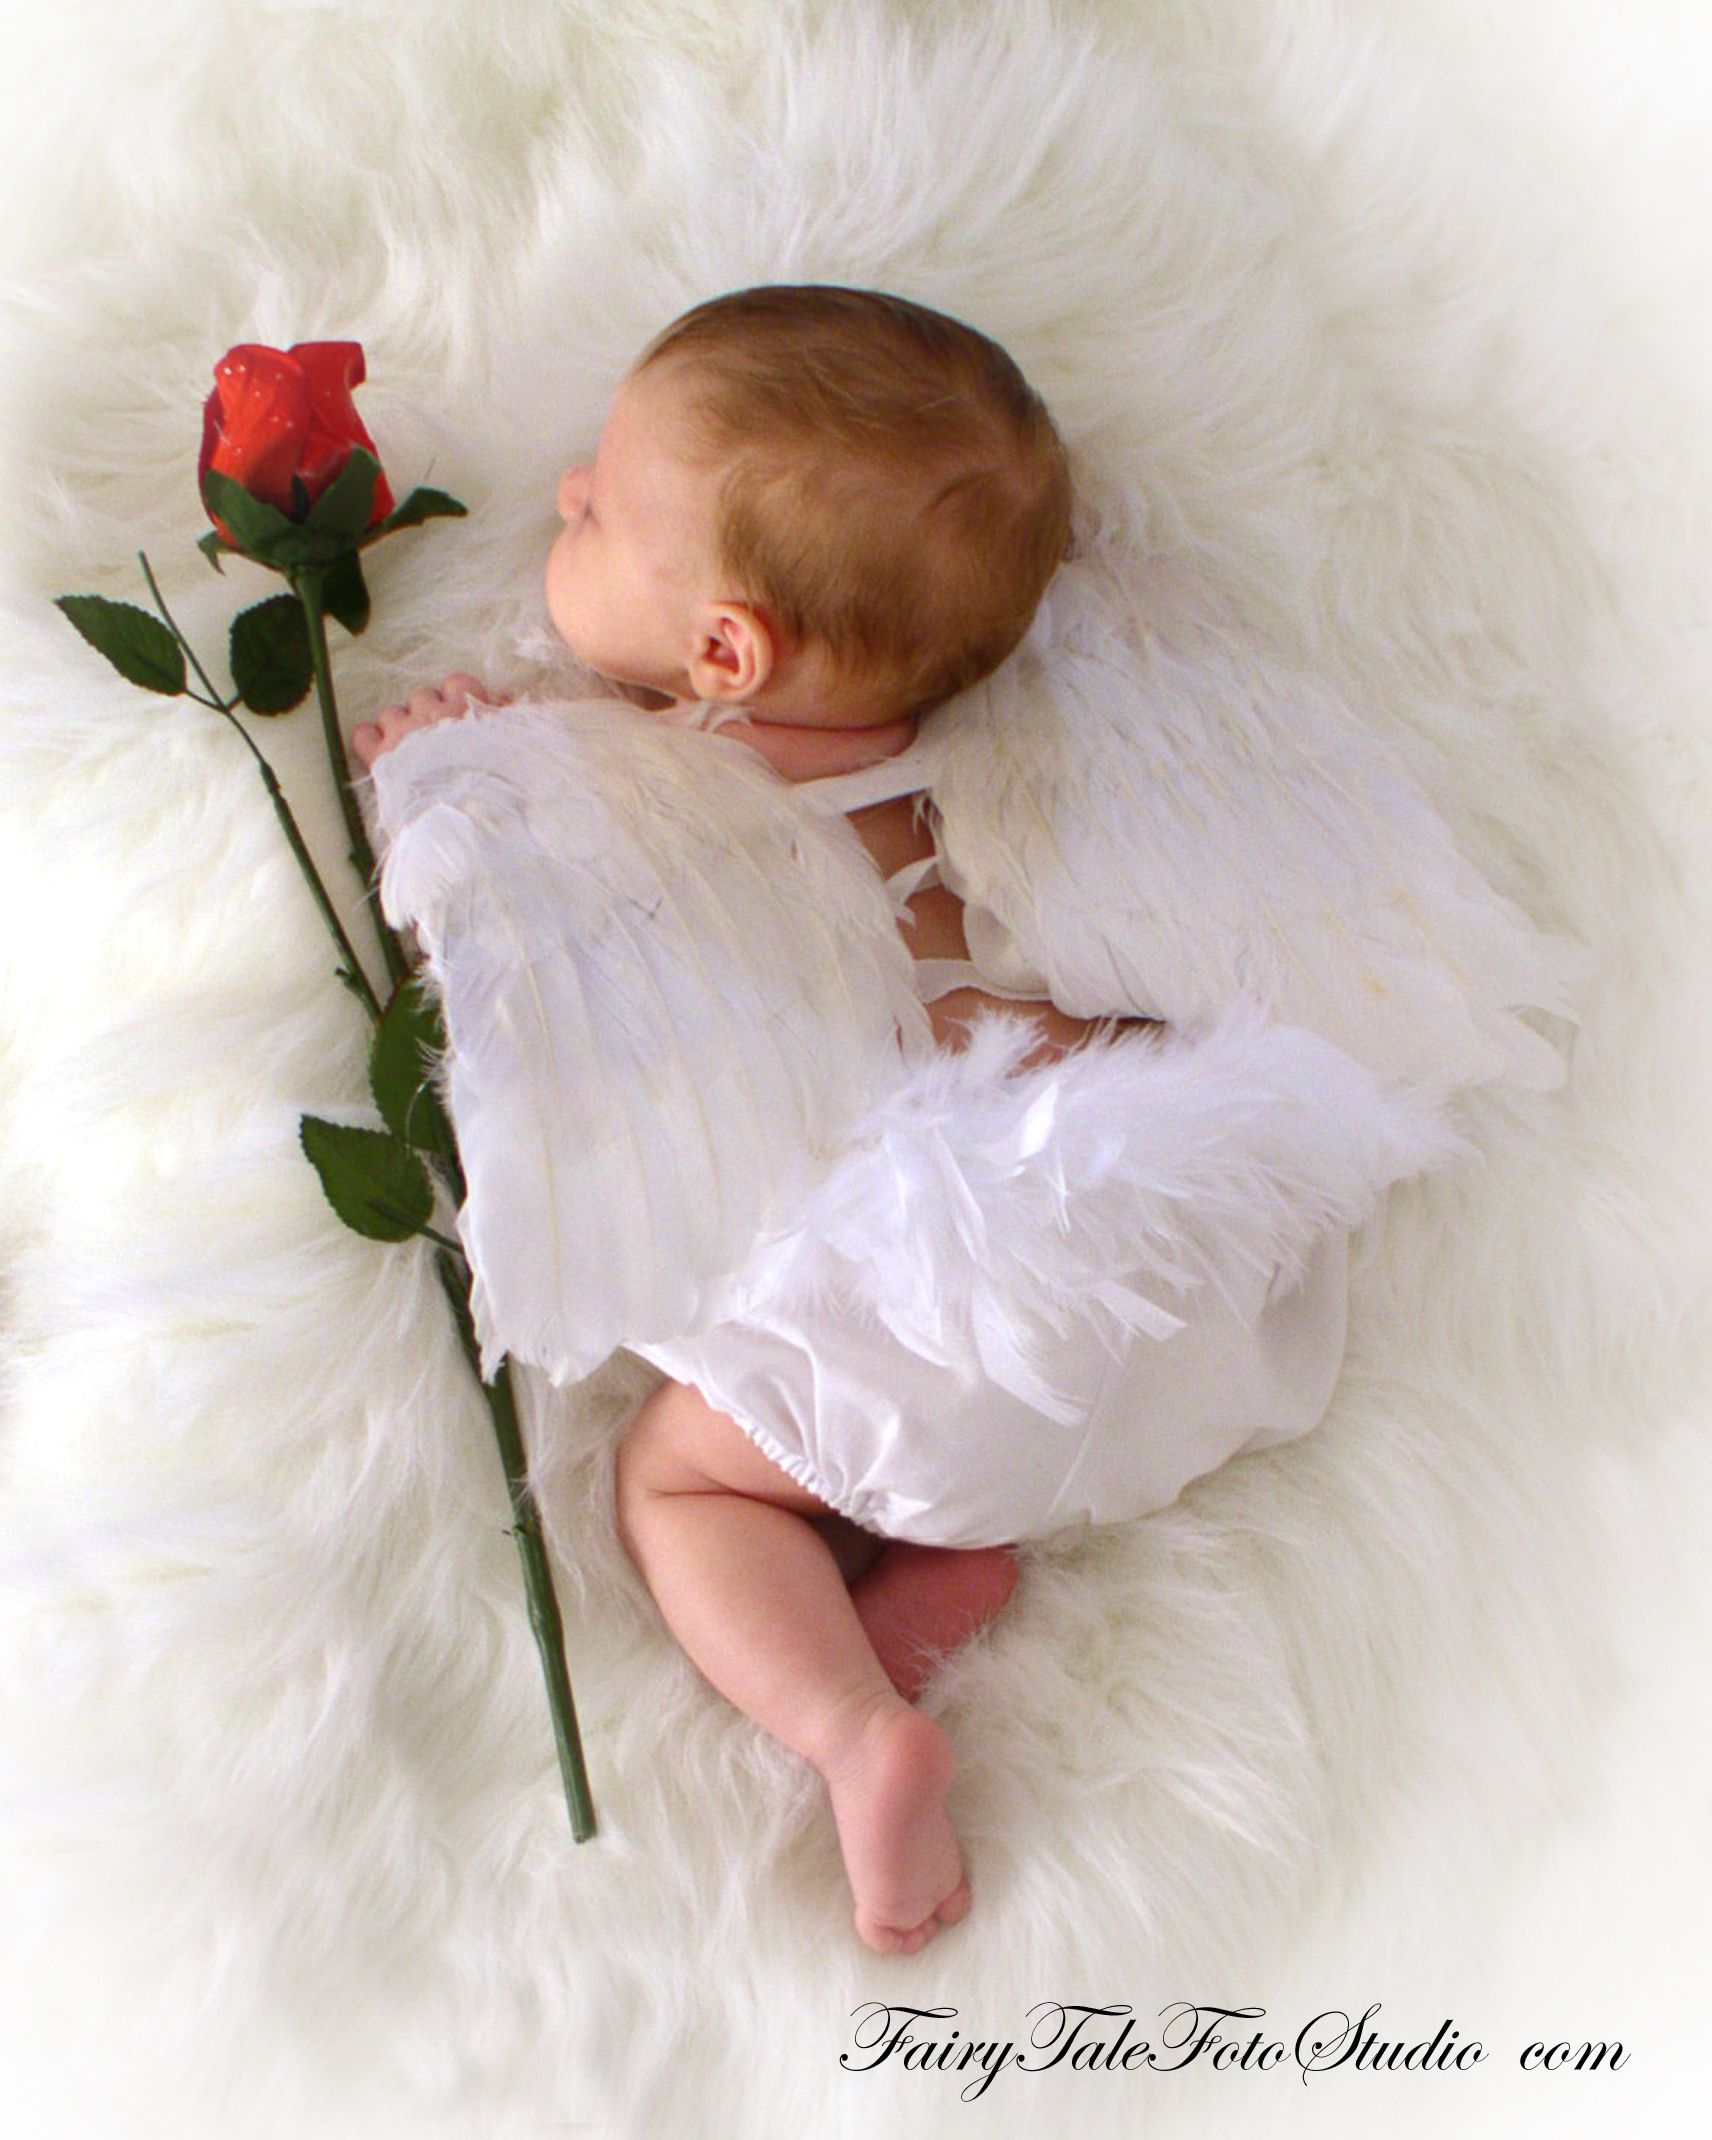 Newborn baby angel with rose cupid valentines day portrait poses photo idea photography cute kid pic baby pics posing ideas kids children